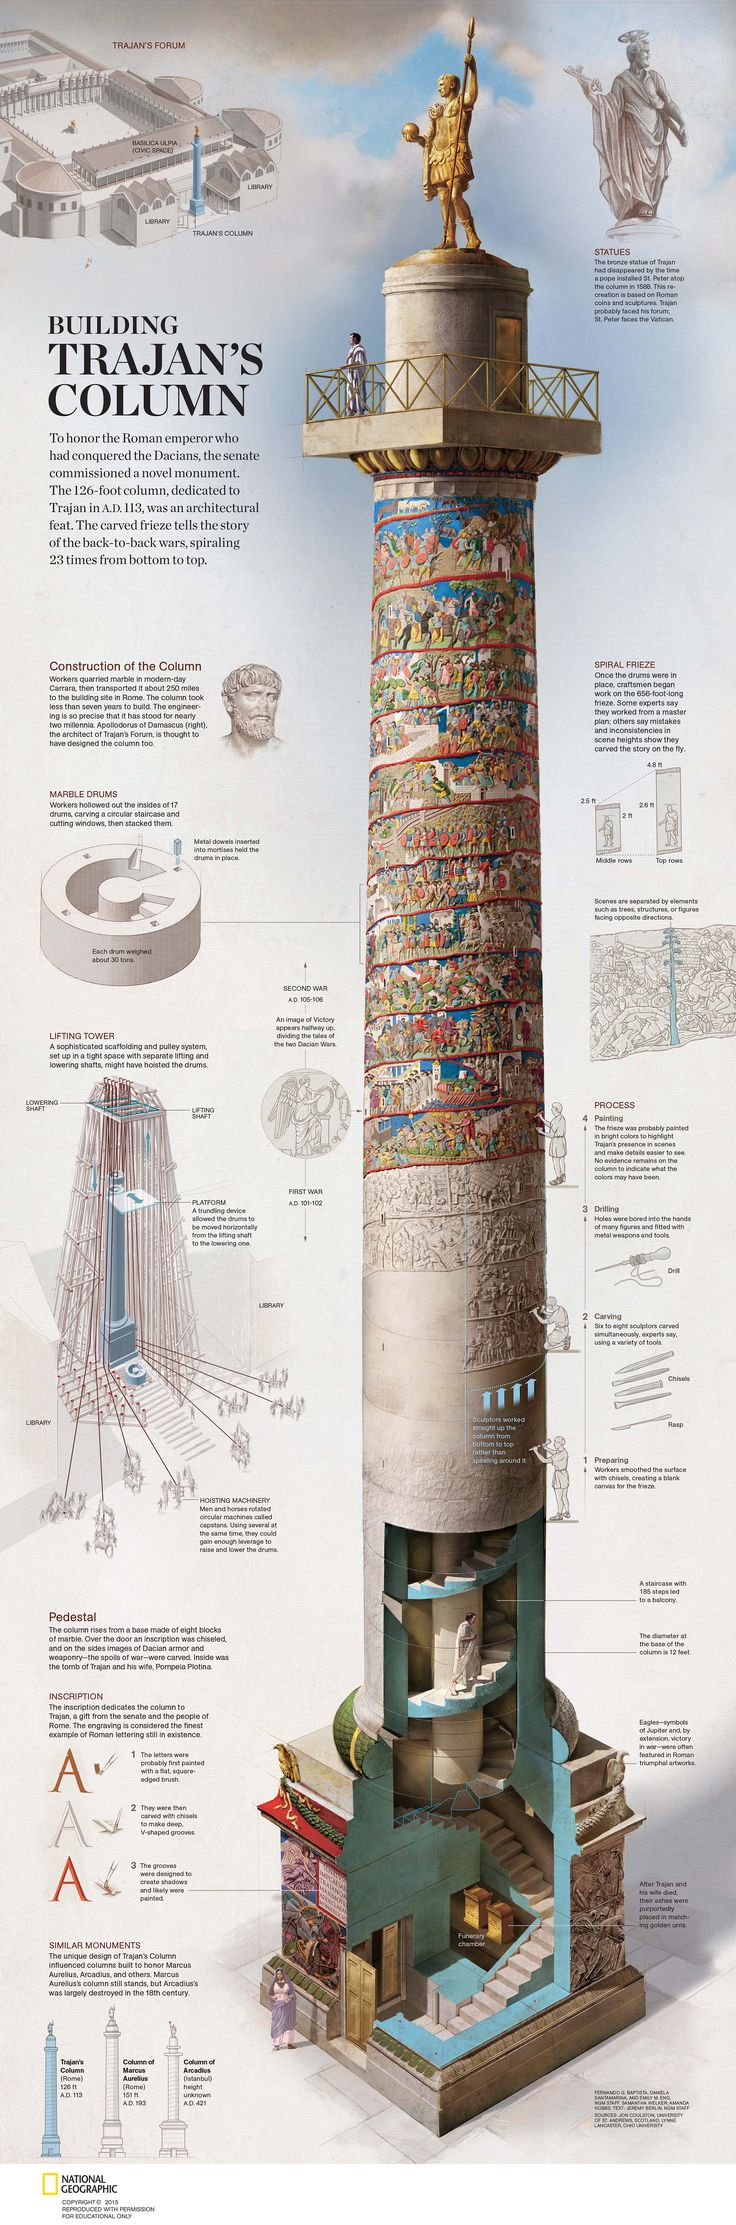 Колоната на Траян/ Building Trajan's column. (More design inspiration at www.aldenchong.com)